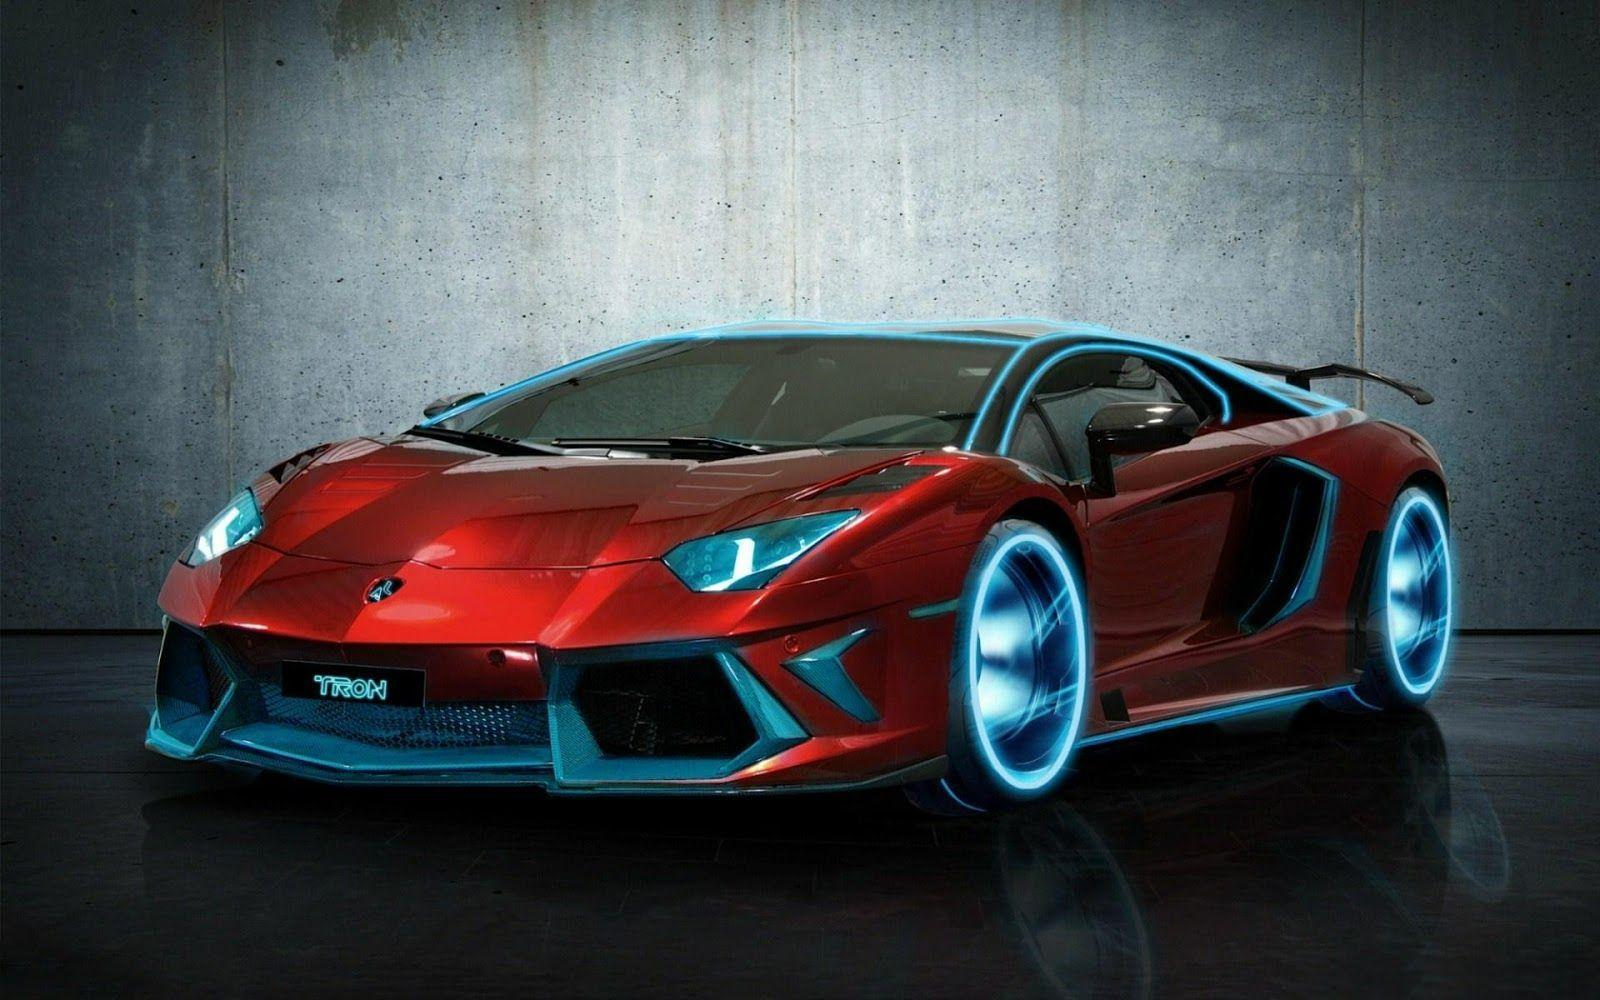 Cool Lambo Wallpapers , Top Free Cool Lambo Backgrounds